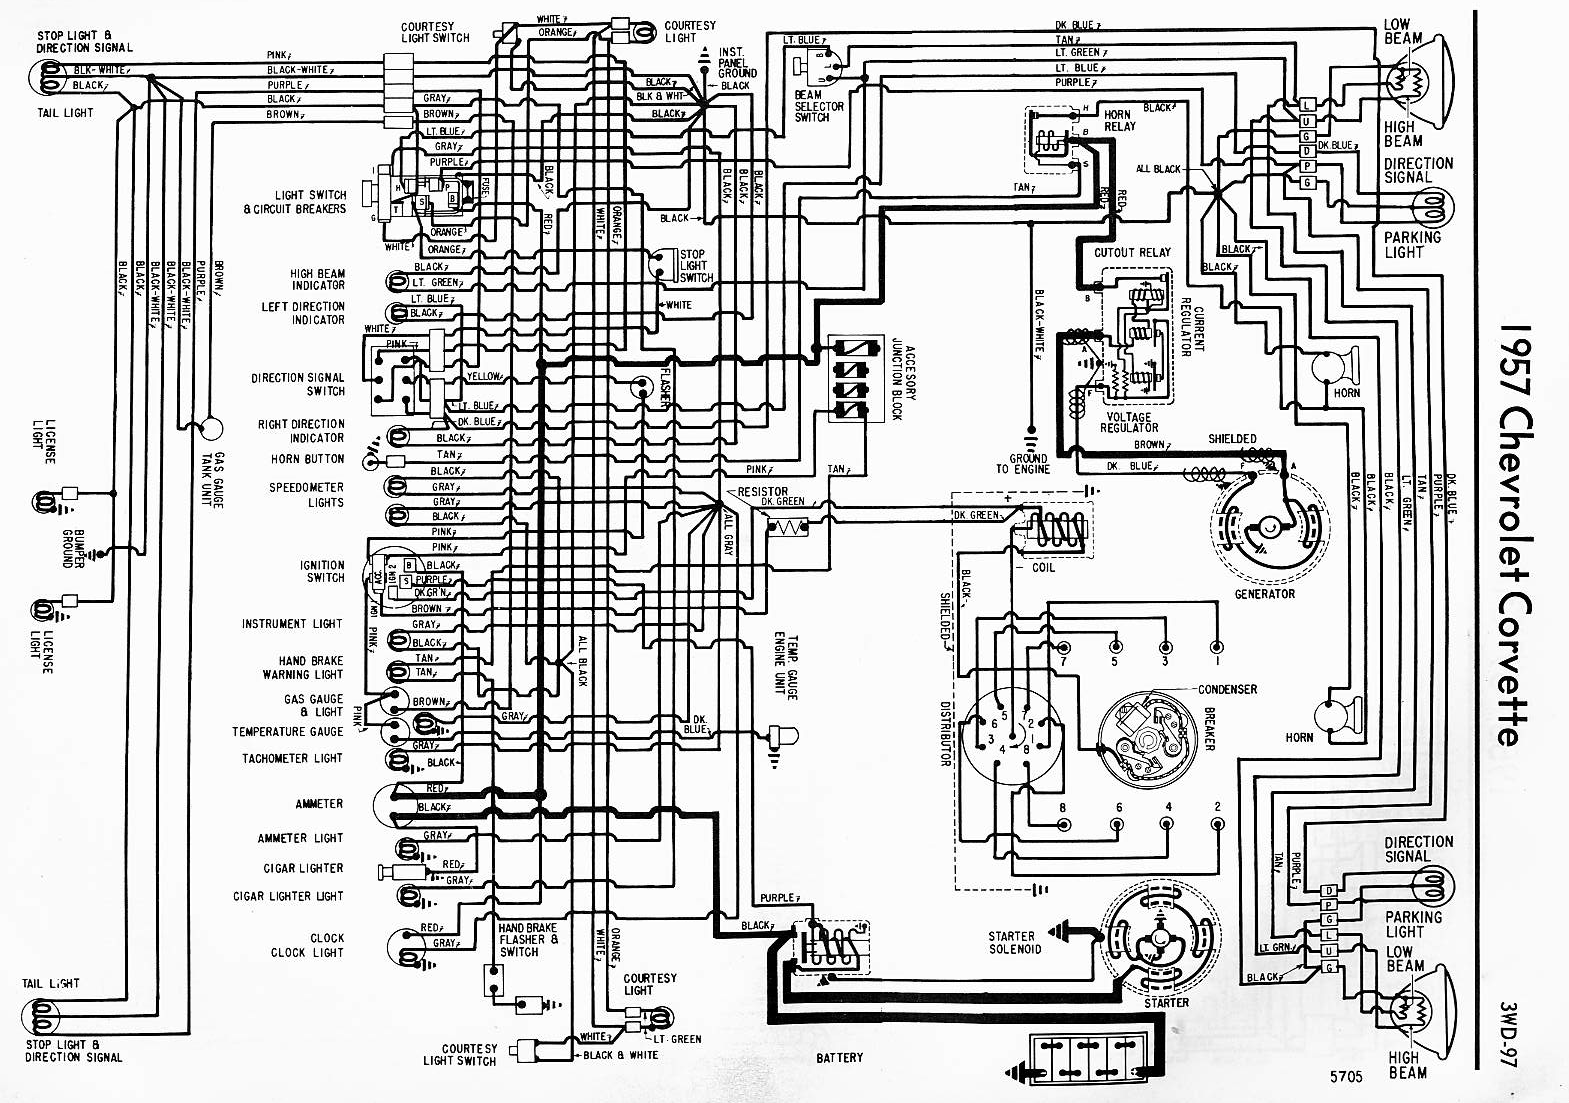 57 corvettte tracer schematic best one 1957 corvette wiring diagram willcox corvette, inc 1980 corvette wiring diagram at creativeand.co